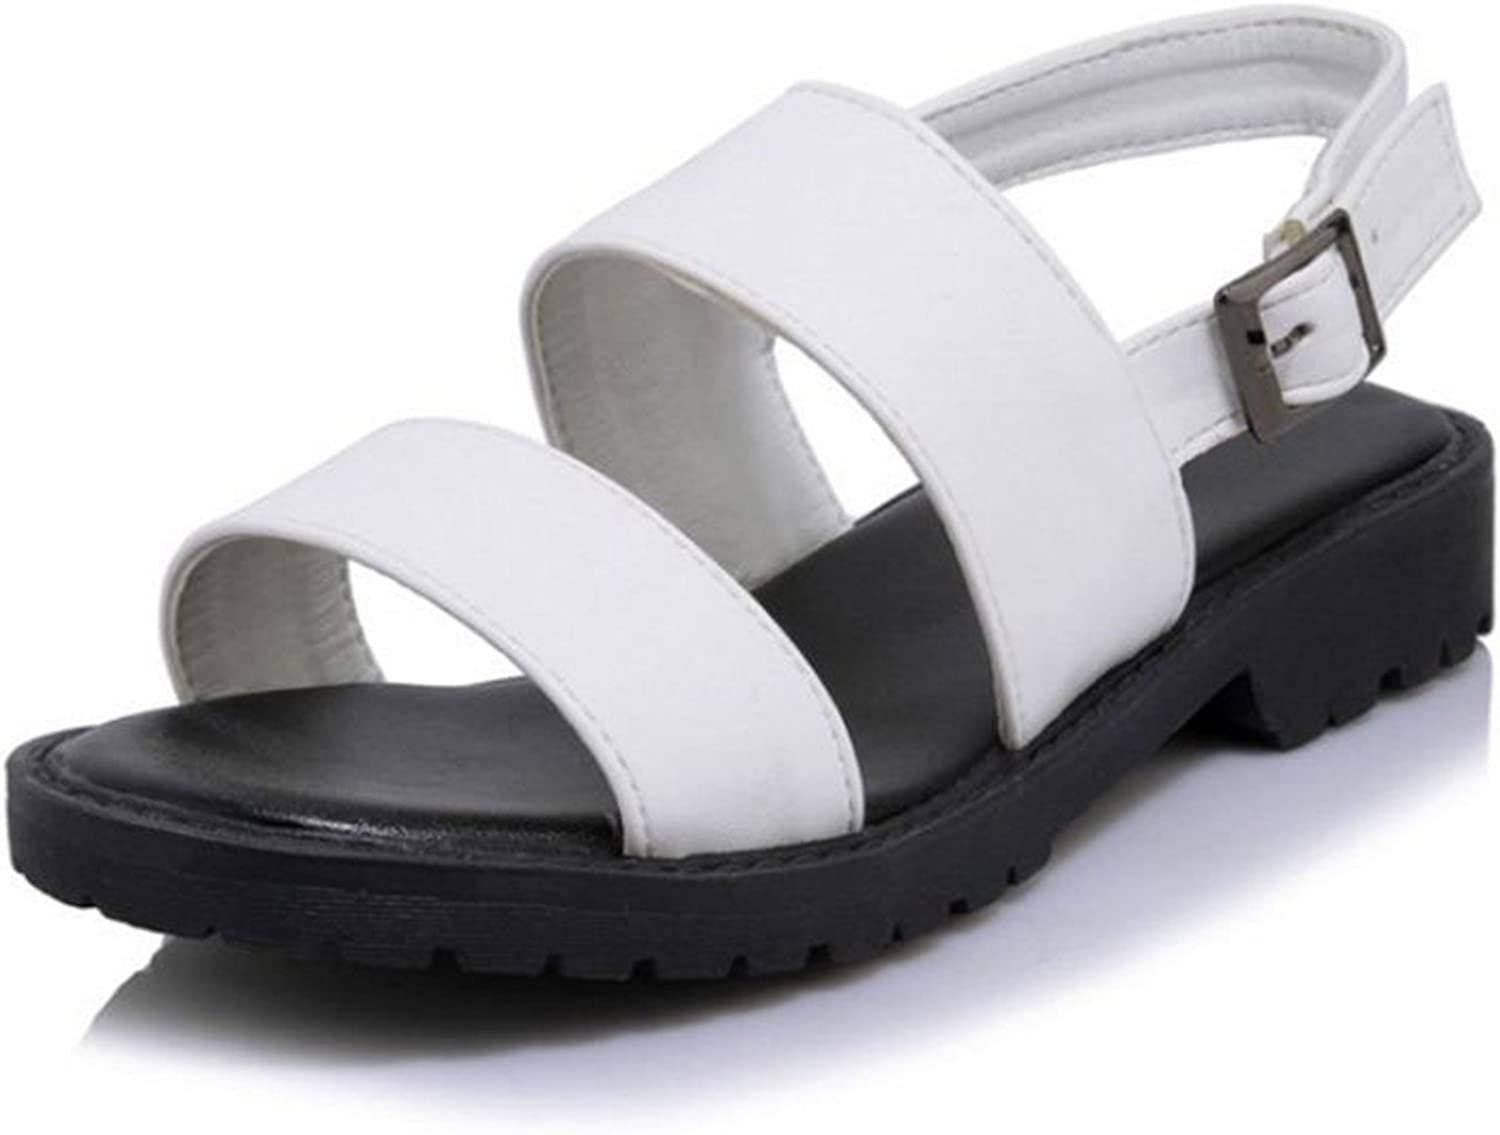 Nerefy Size 32-43 Ladies Flats Sandals Open Toe Ankel Strap shoes Women Solid Sexy Sandals Footwears